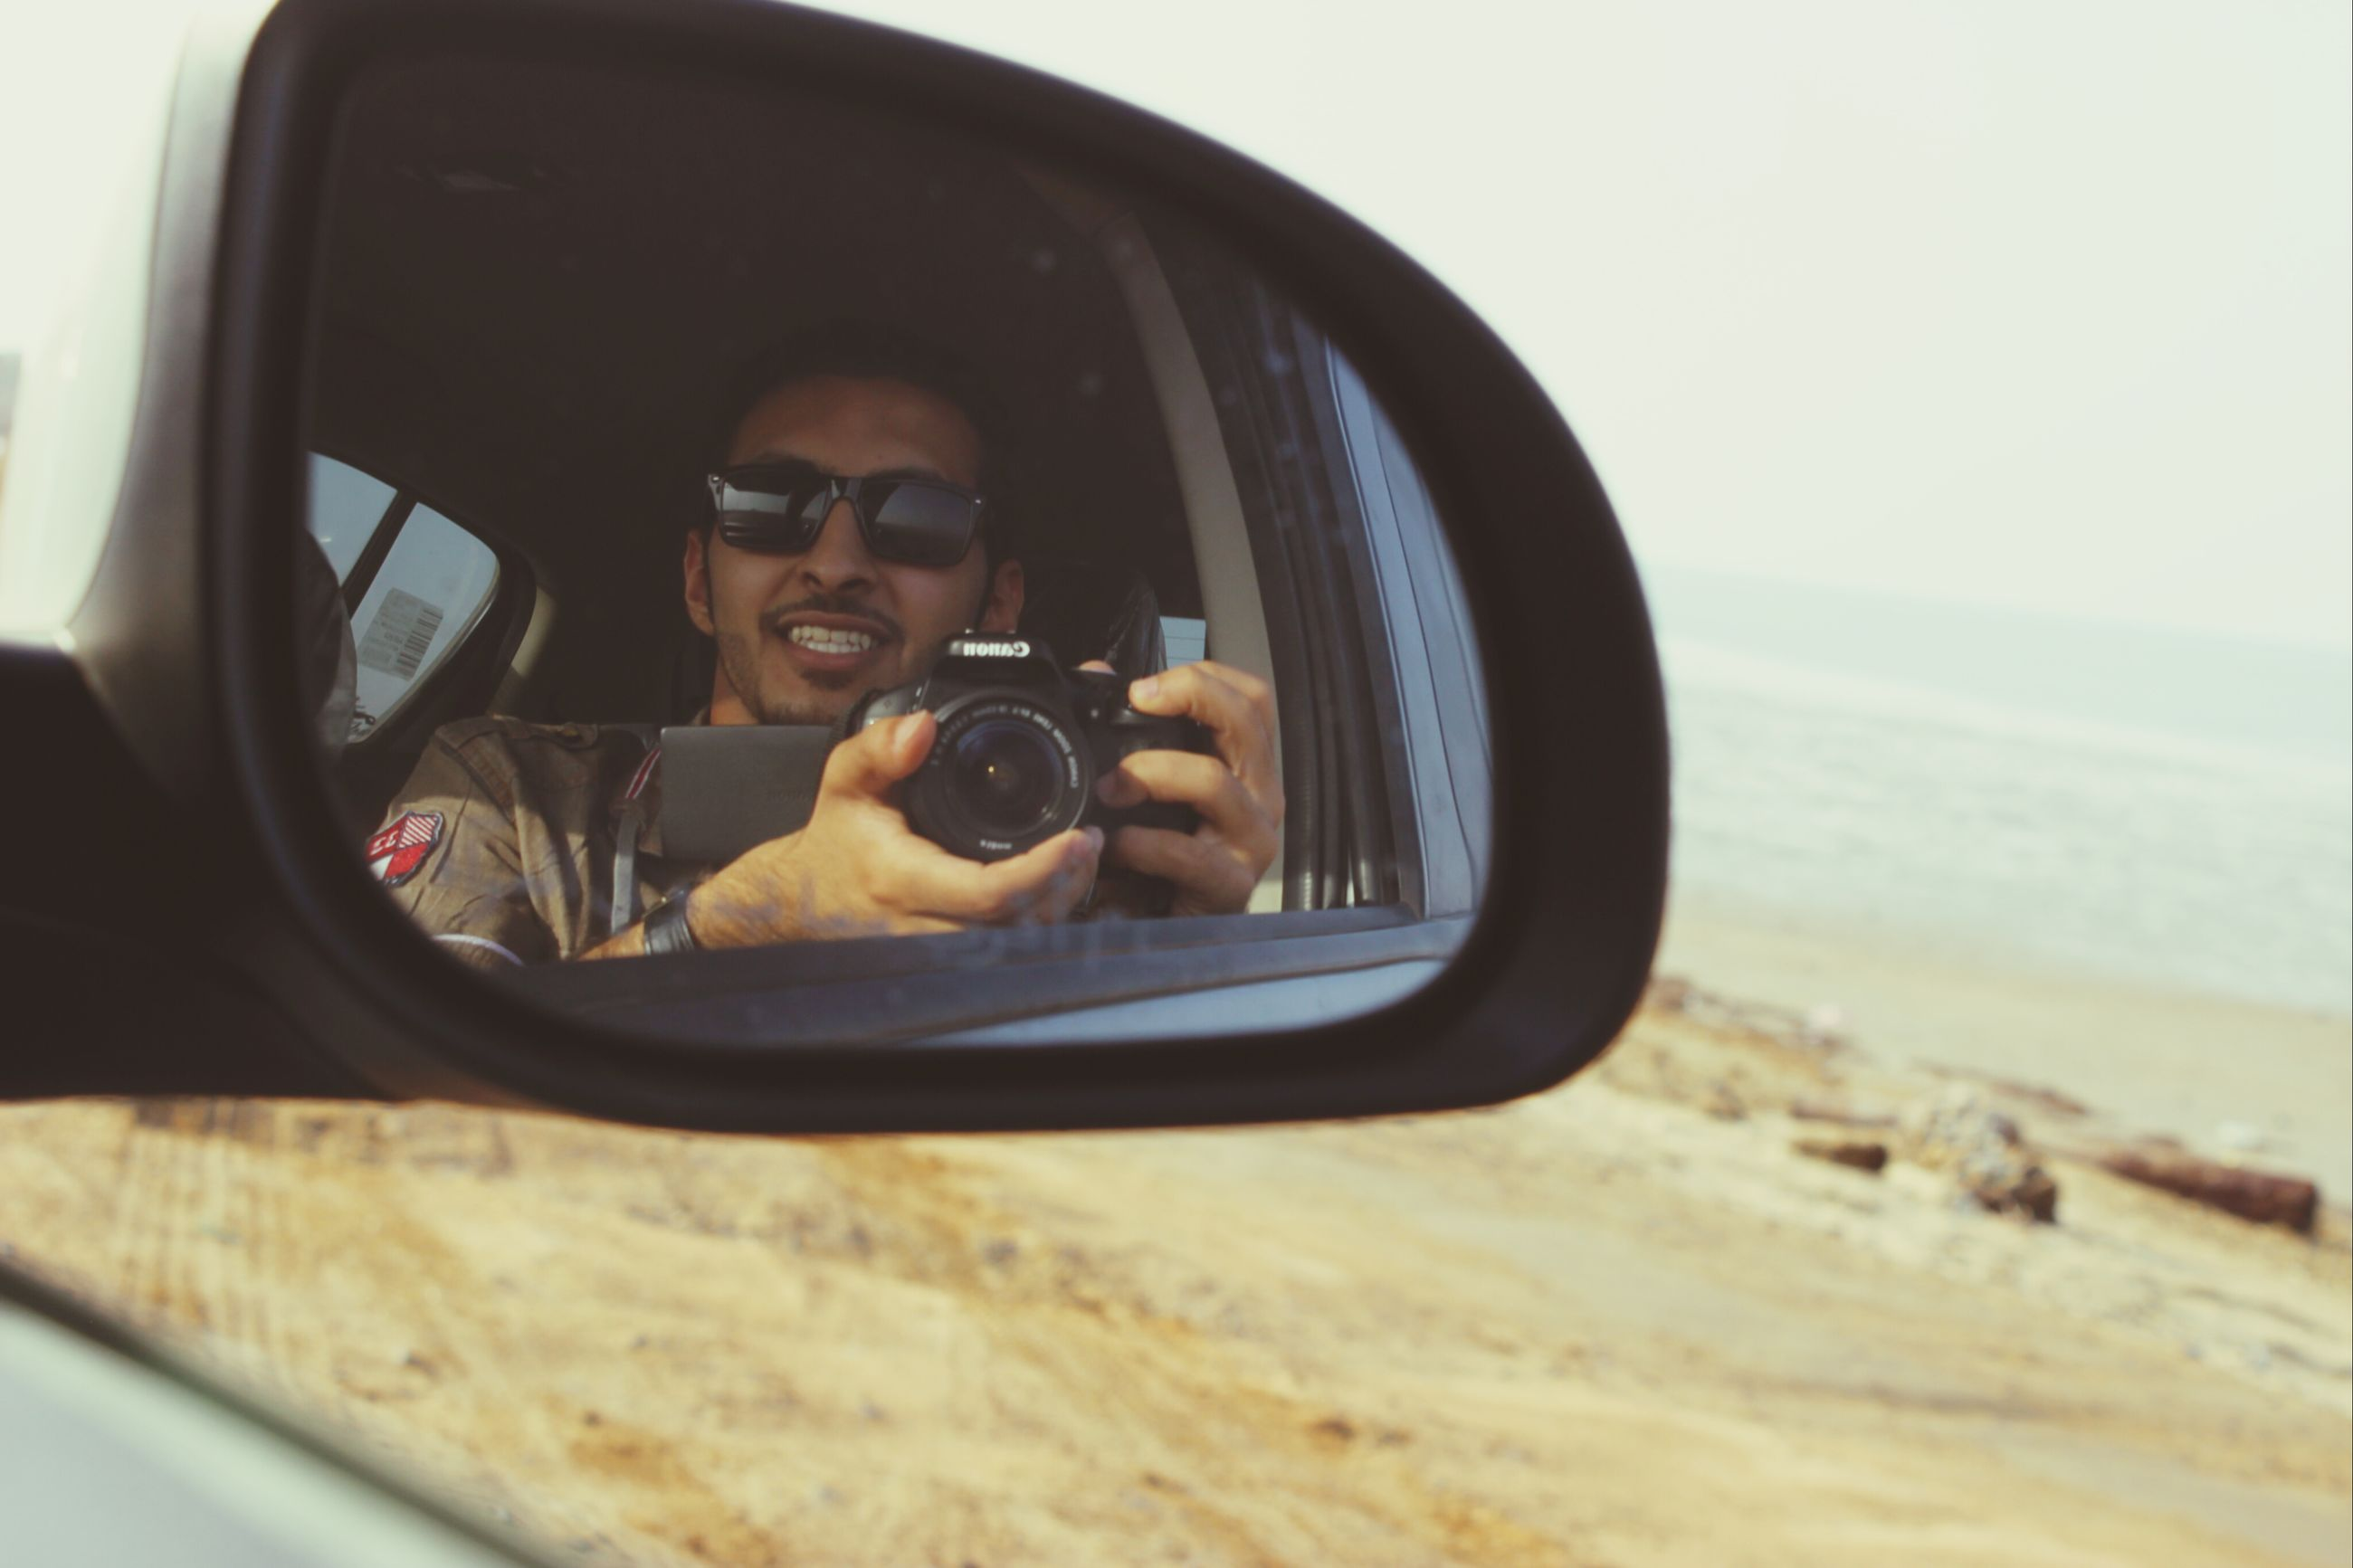 lifestyles, sunglasses, young adult, leisure activity, transportation, mode of transport, person, looking at camera, land vehicle, portrait, sitting, car, young men, travel, reflection, photography themes, front view